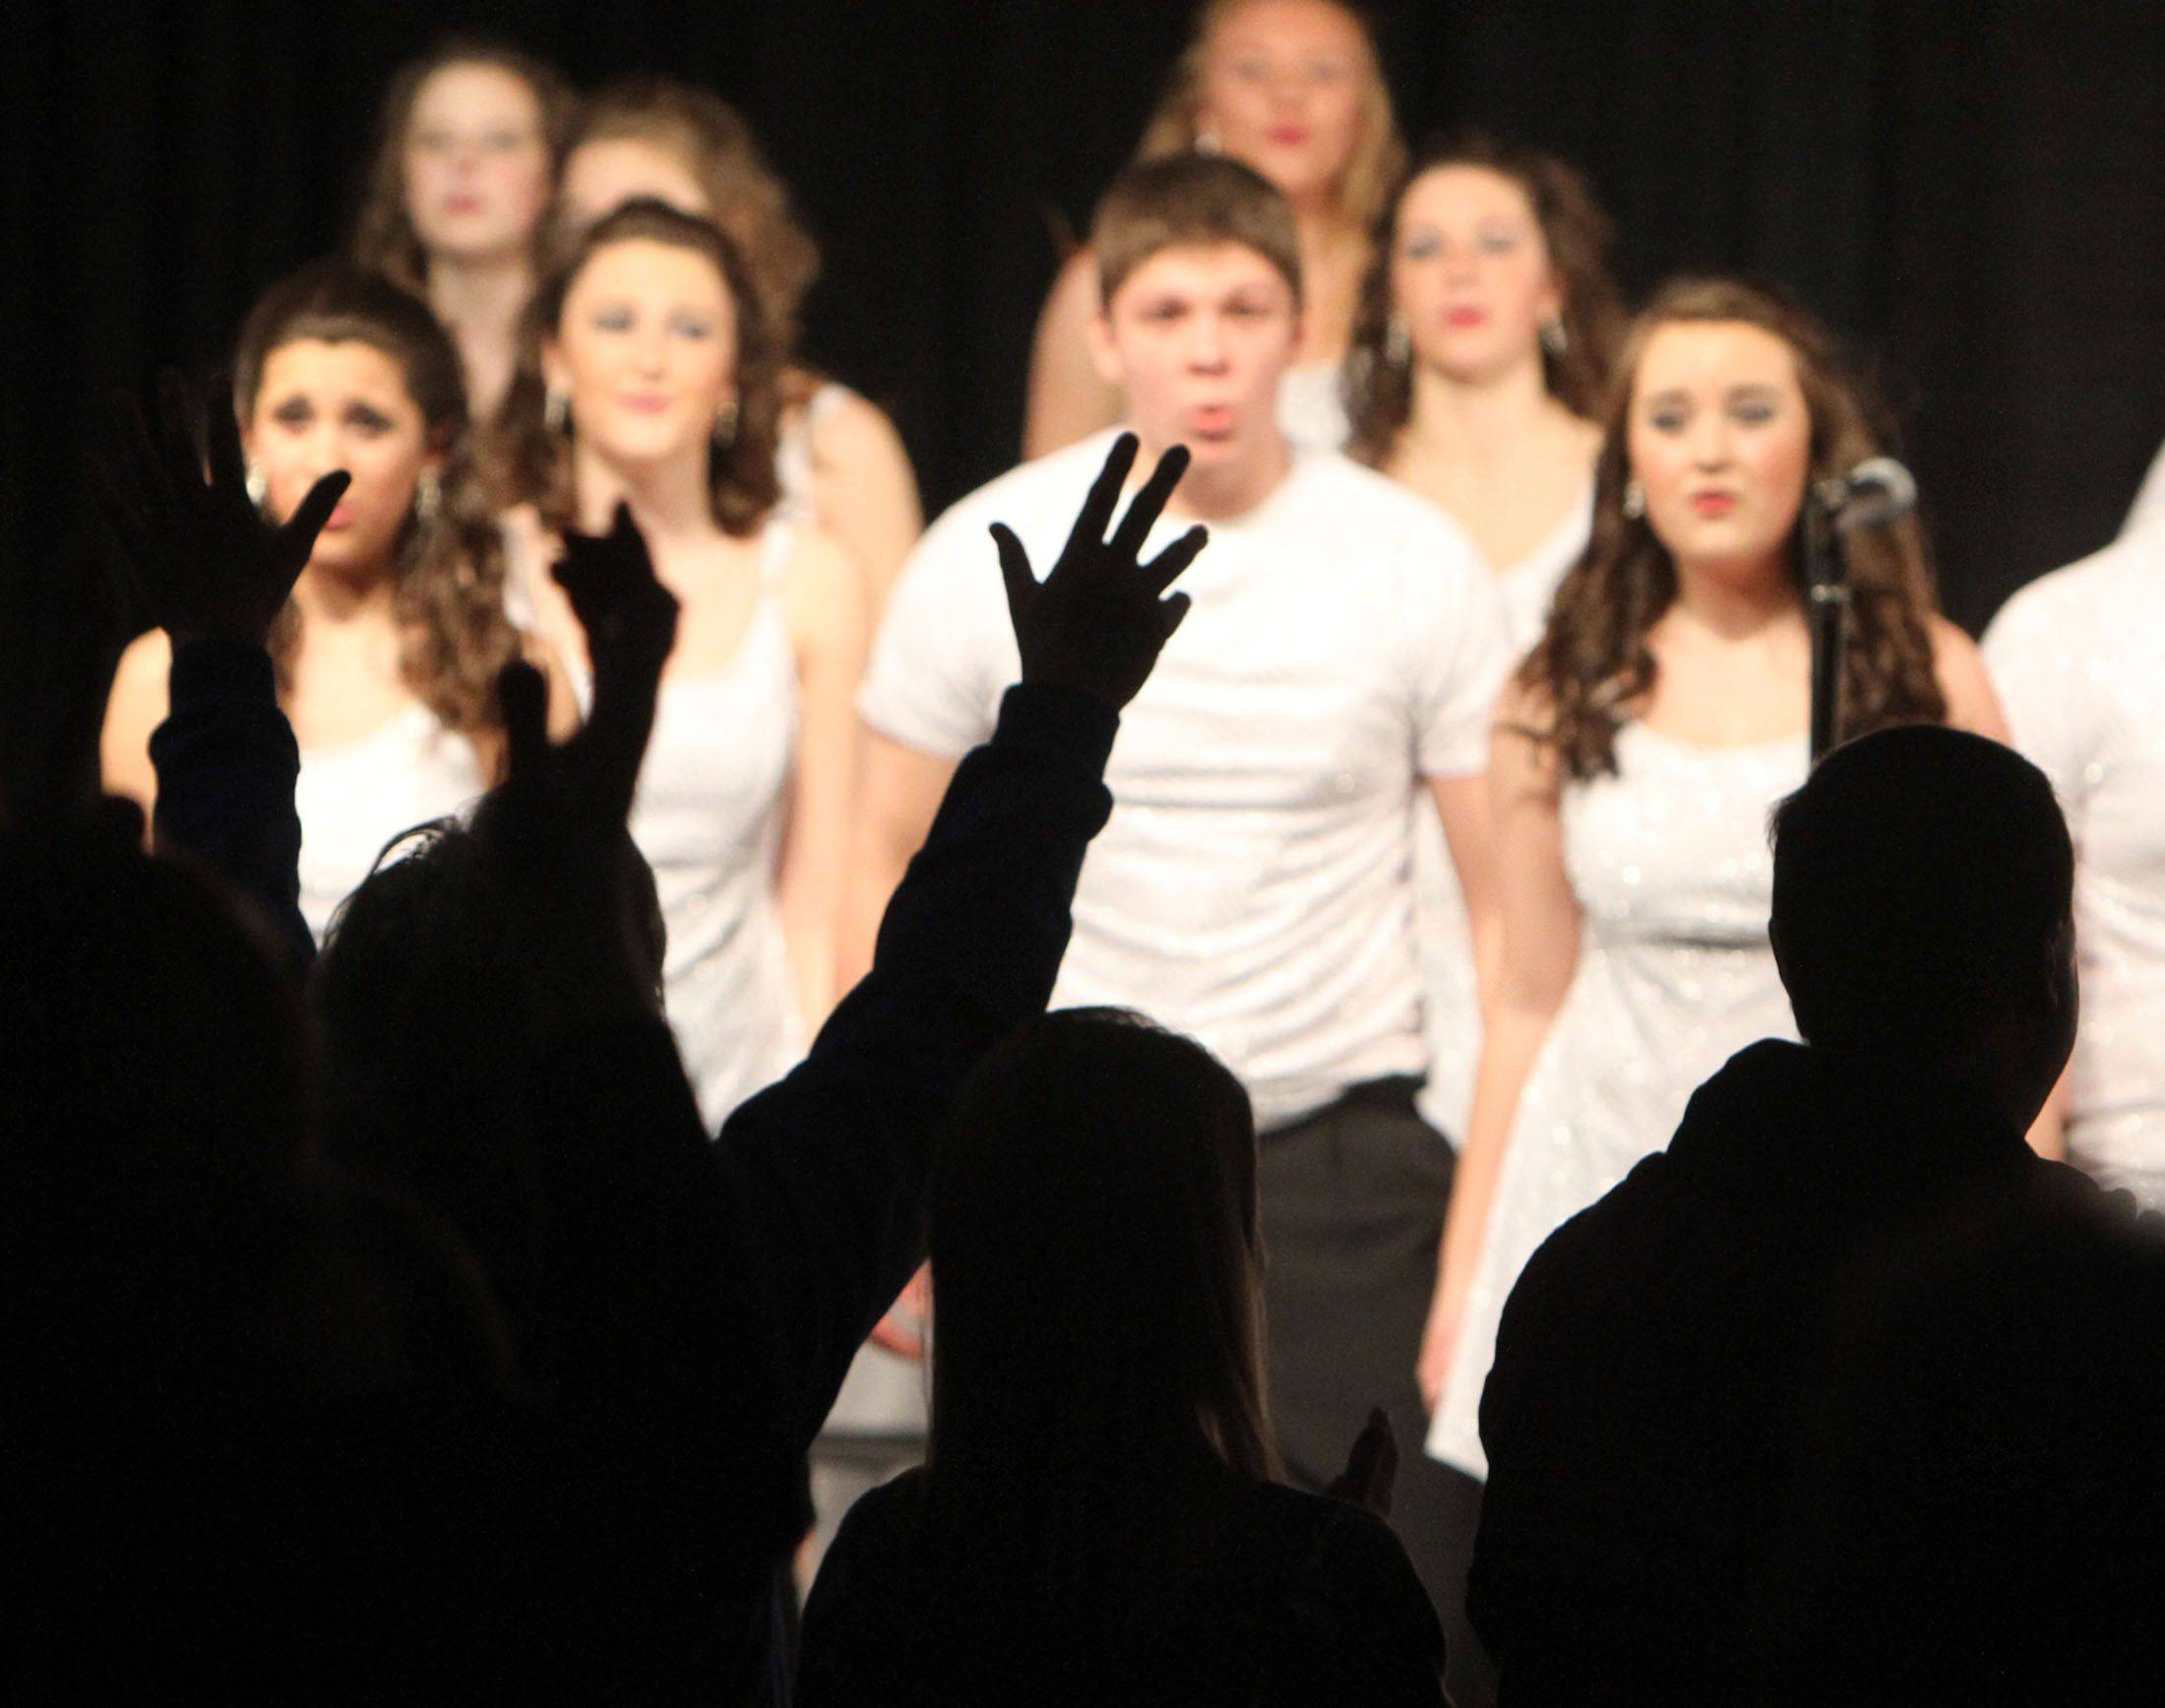 Wheaton North's Flight gets a big hand after competing in the festival division at the 18th annual Chicagoland Showcase choir competition at Hersey in Arlington Heights on Saturday.